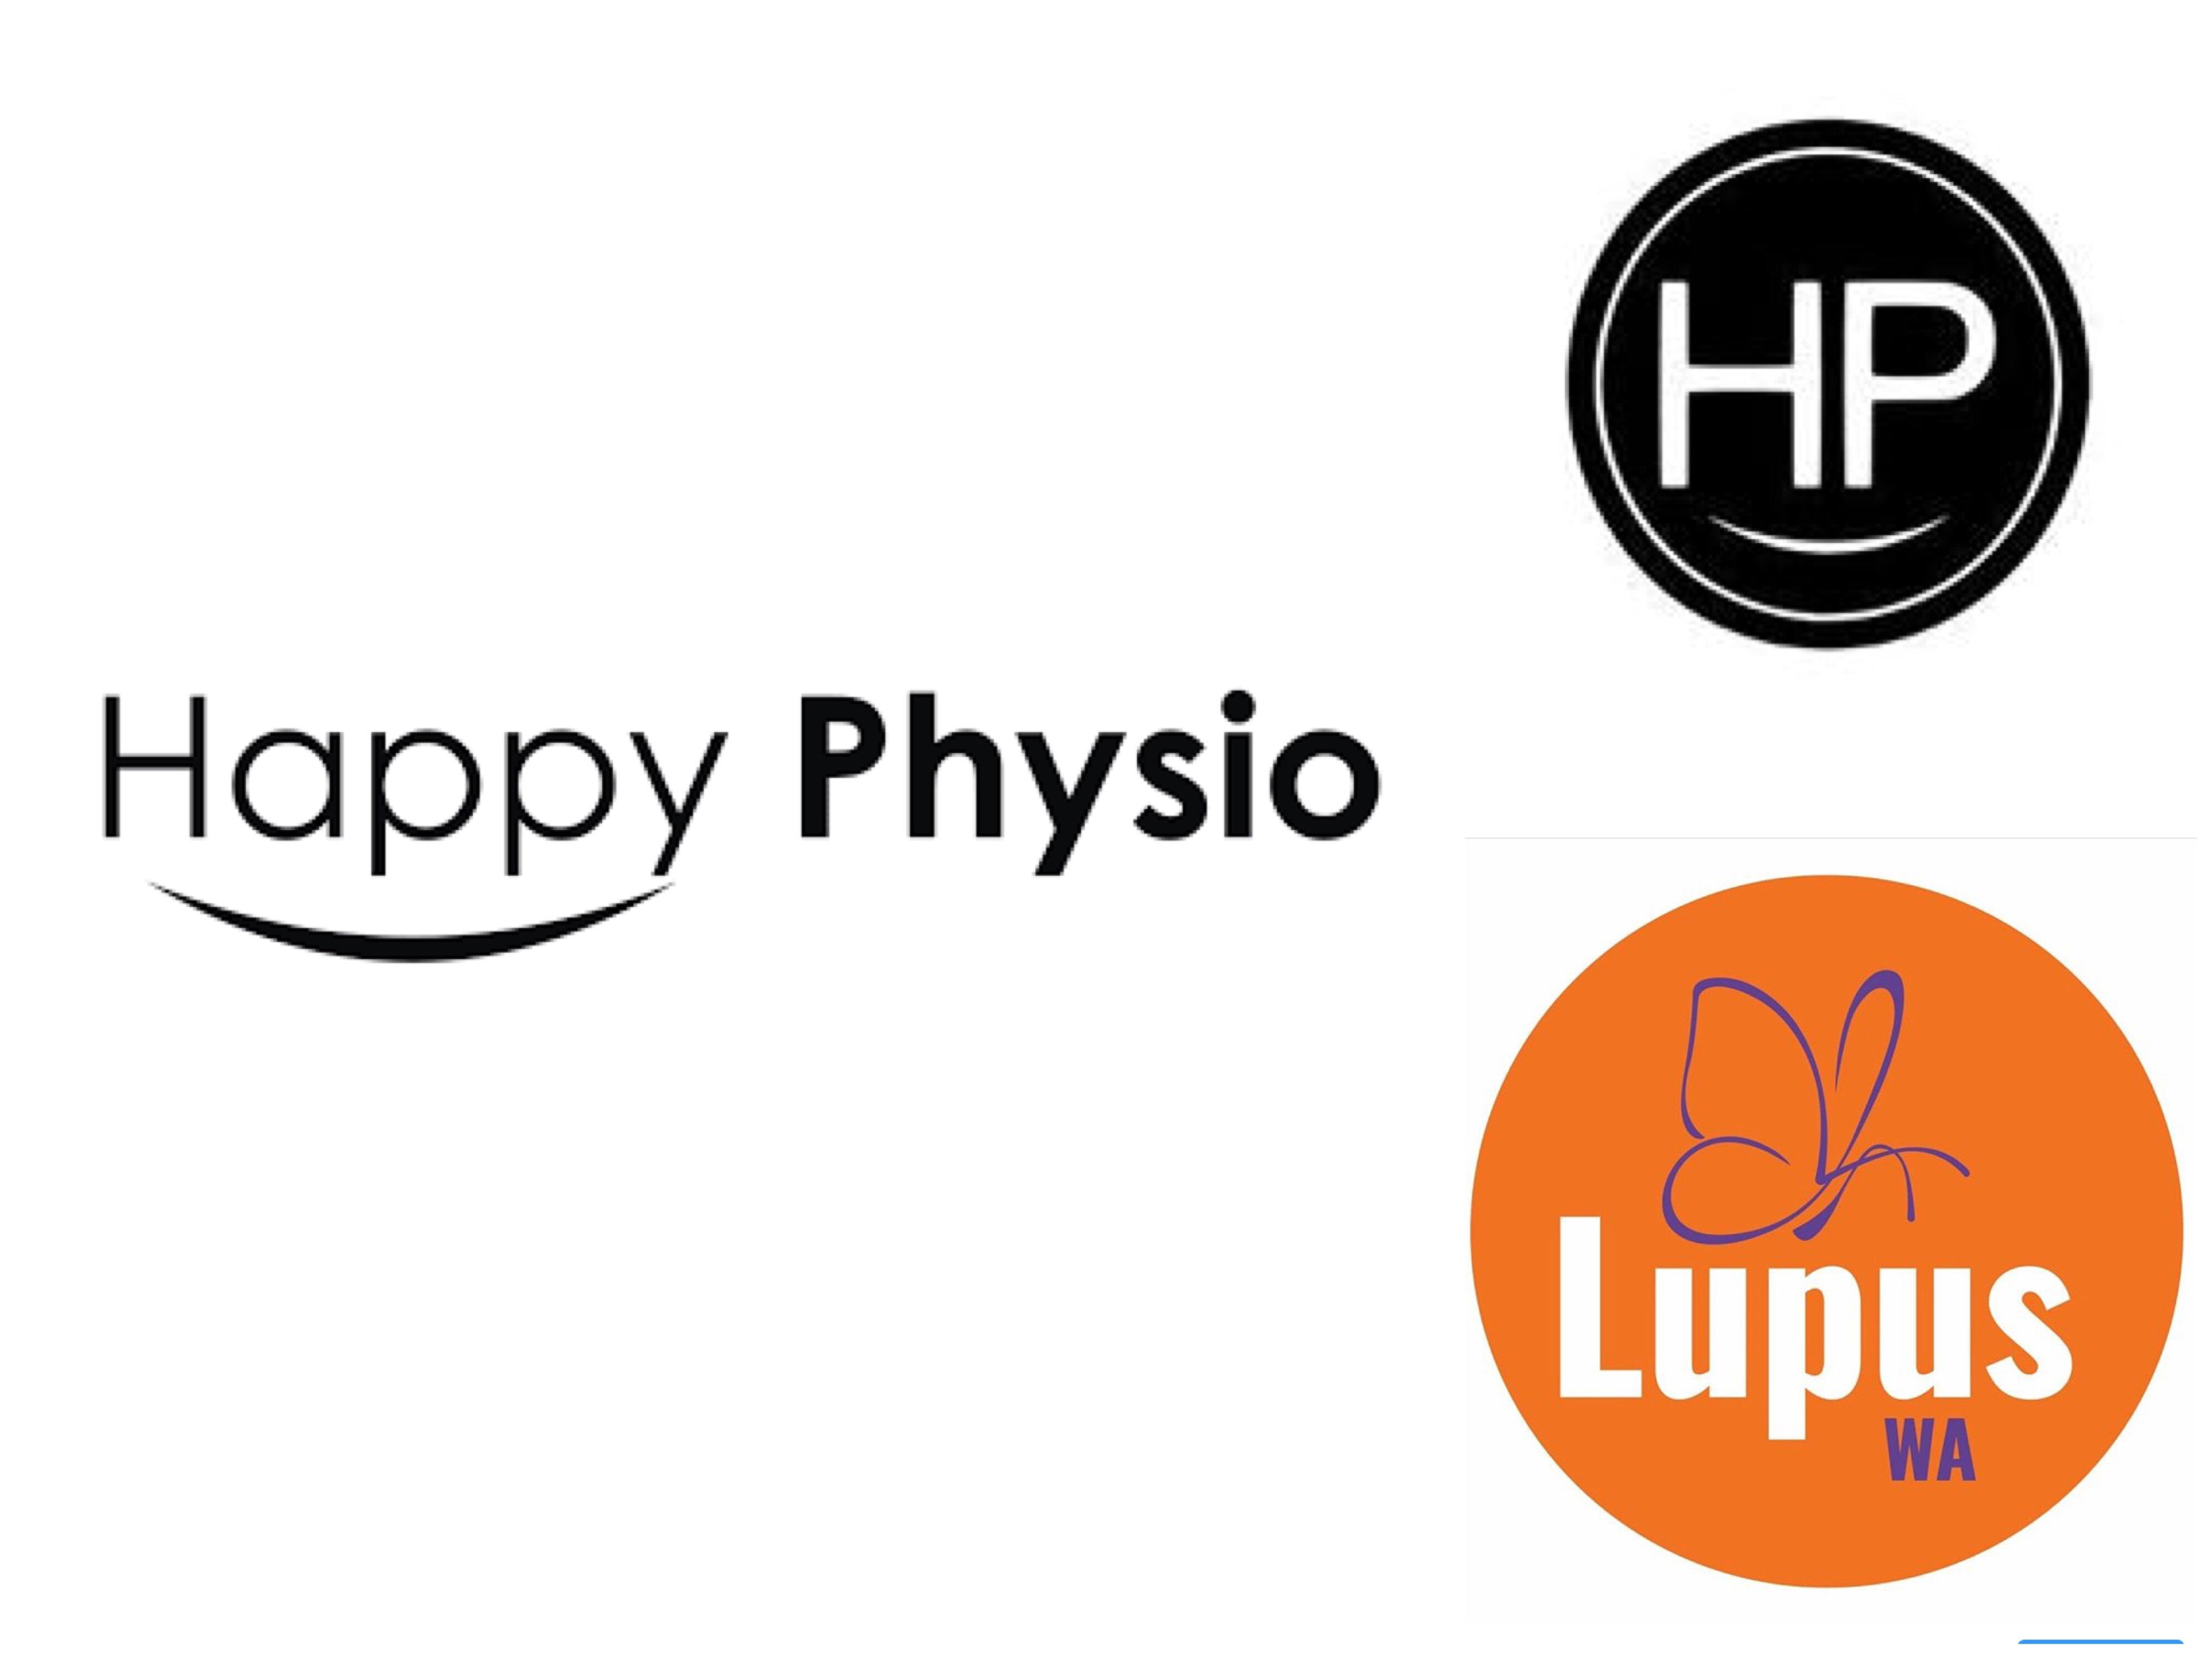 Happy Physio Promotion Offer Lupus Wa